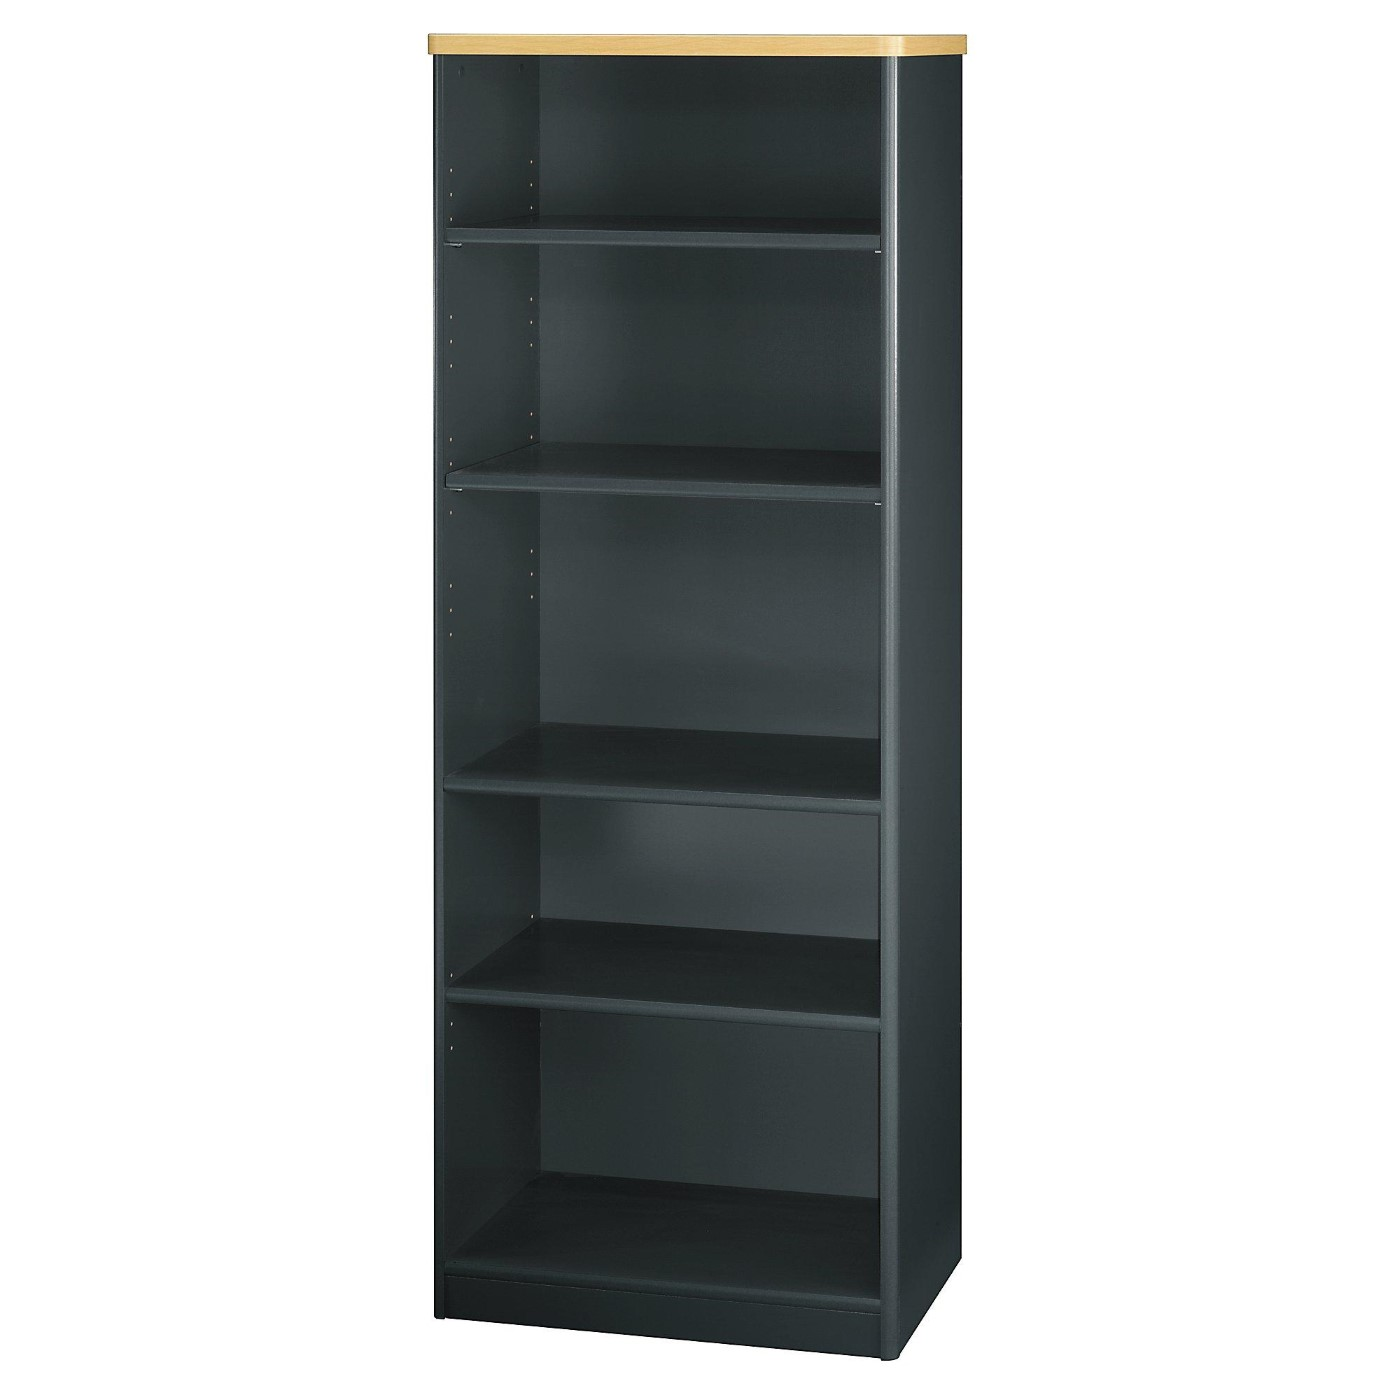 <font color=#c60><b>BUSH BUSINESS FURNITURE SERIES A 26W 5 SHELF BOOKCASE. FREE SHIPPING</font></b>